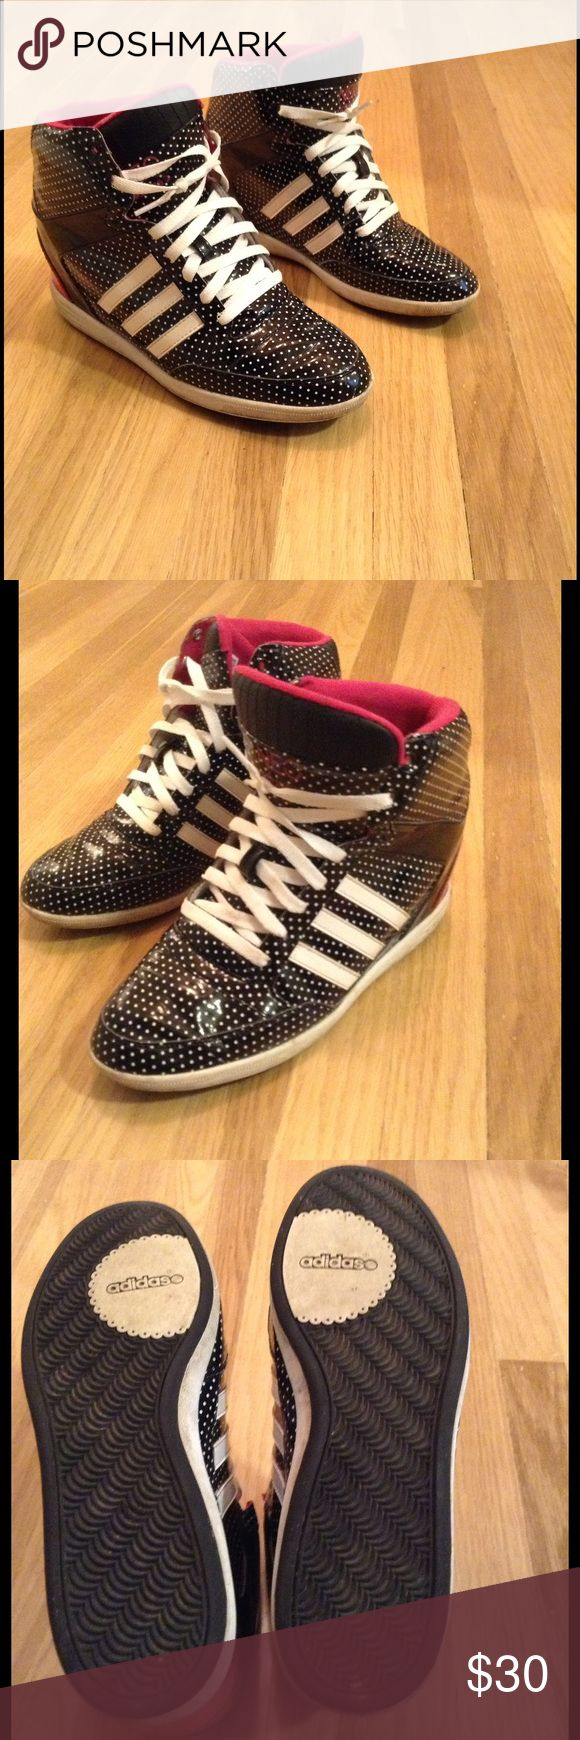 ADIDAS NEO black & white wedge sneakers size 9.5 Super cool patent leather Adidas NEO hidden heel sneakers. Size 9.5 but will fit a size 10 as well. Happily consider offers Adidas Shoes Athletic Shoes